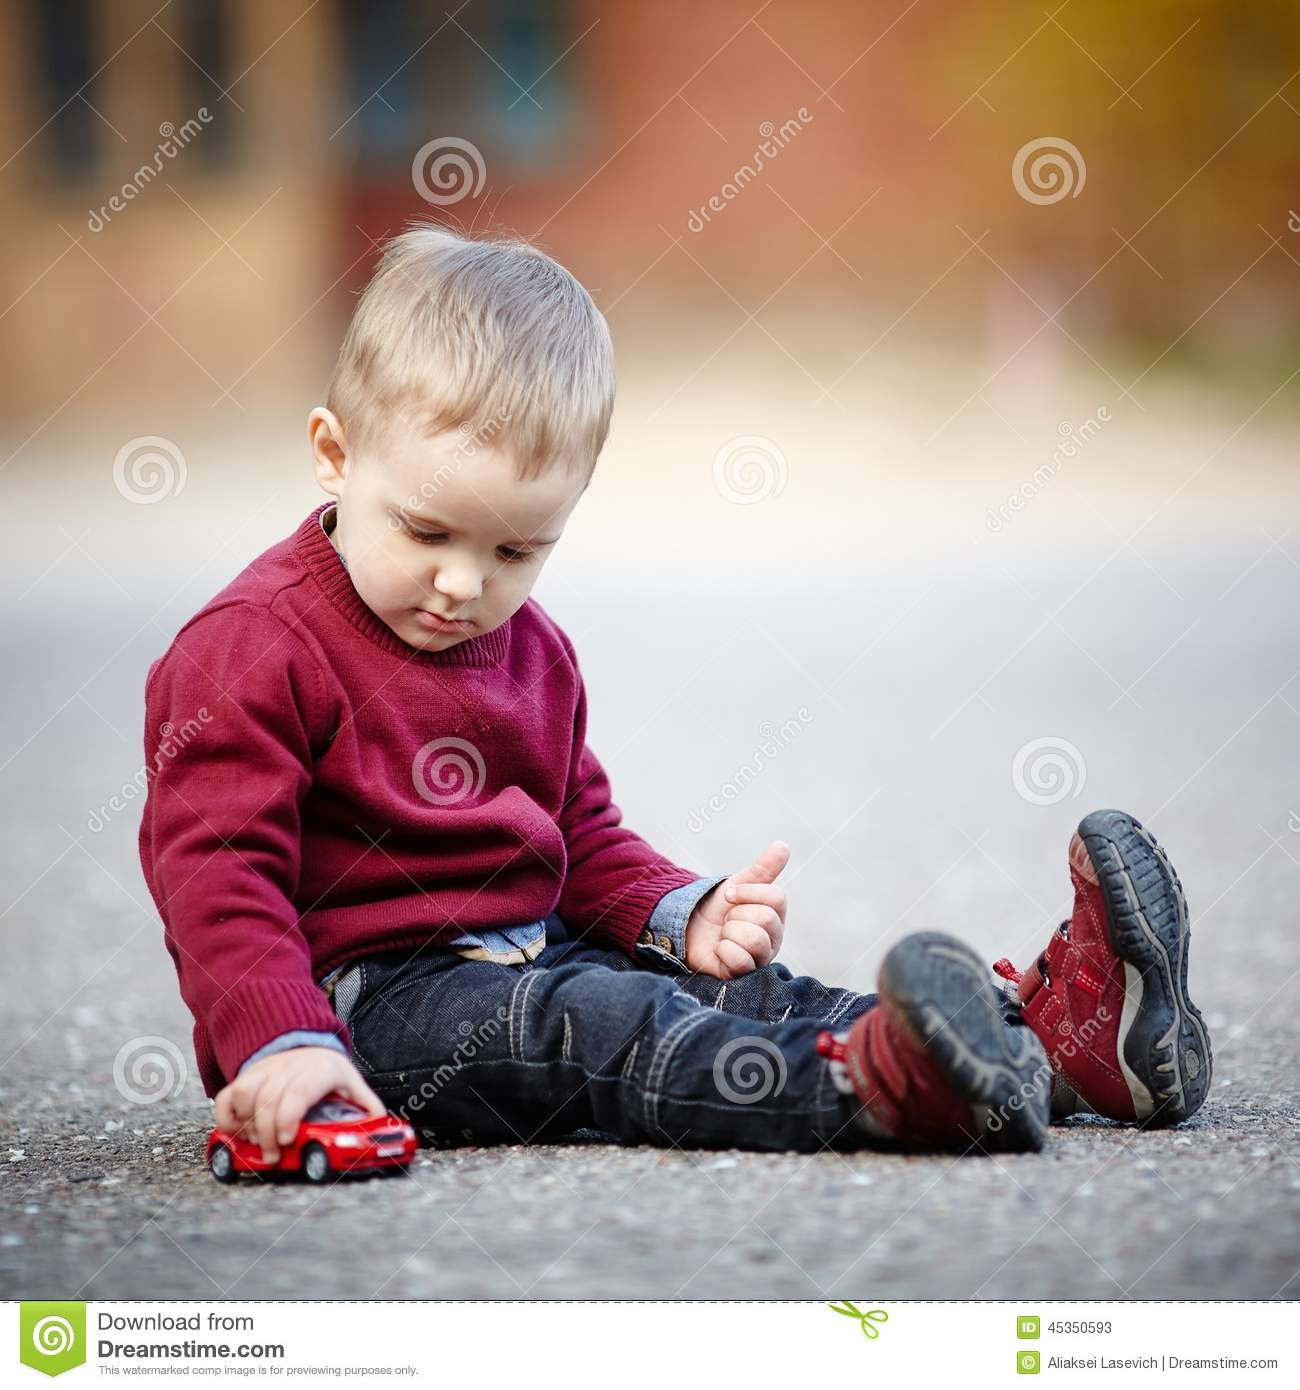 Little Boy With Toy Car : Little boy plays with toy car stock image of